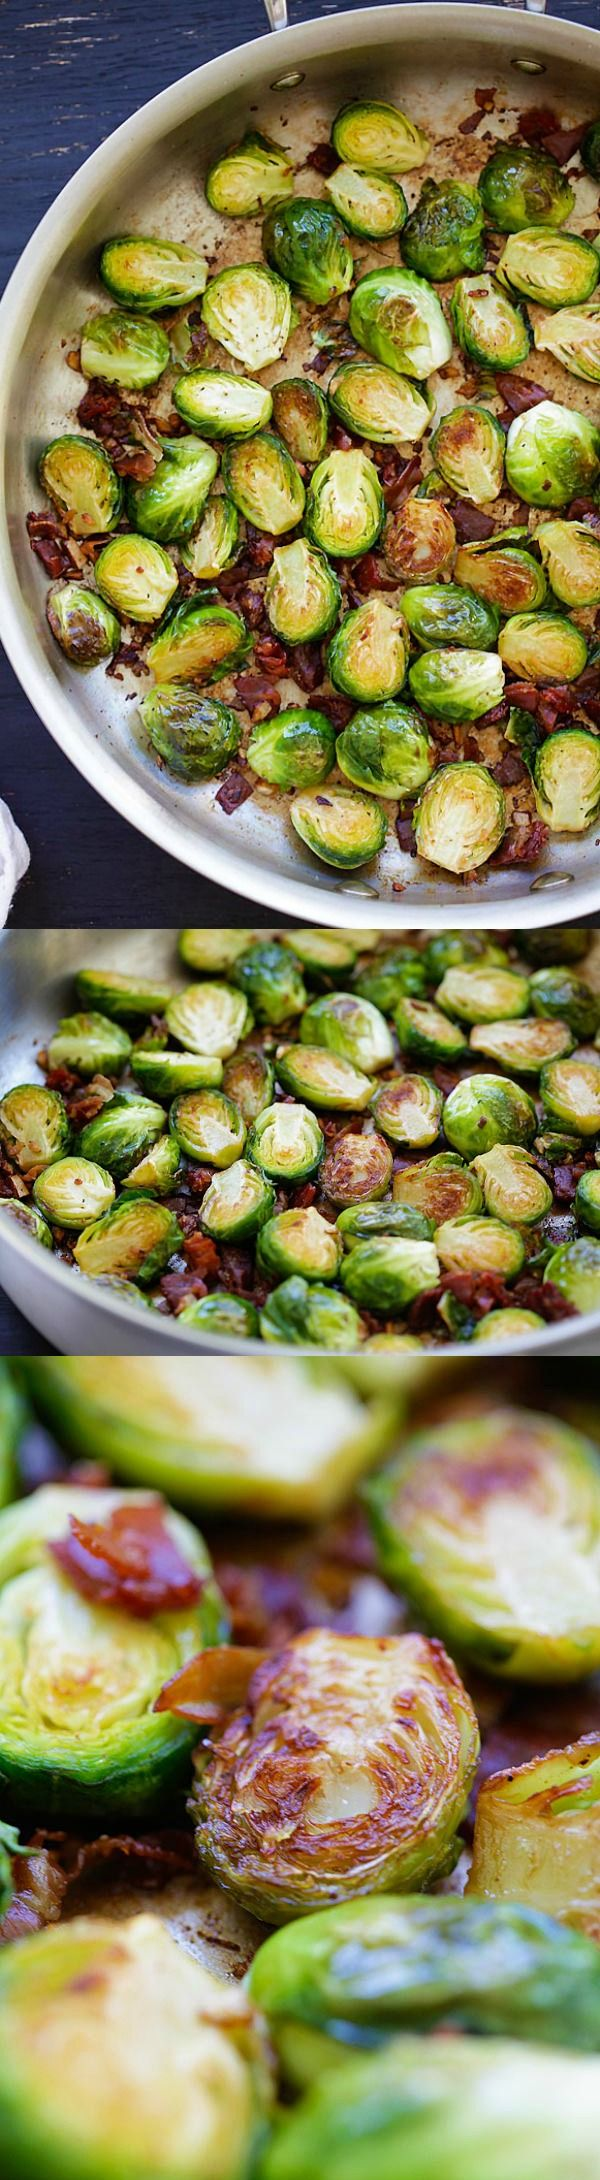 #thanksgiving #sidedish Garlic-Prosciutto Brussels Sprouts – roasted brussels sprouts with smoky prosciutto. Saute on skillet and finish in oven, 20 mins only | rasamalaysia.com